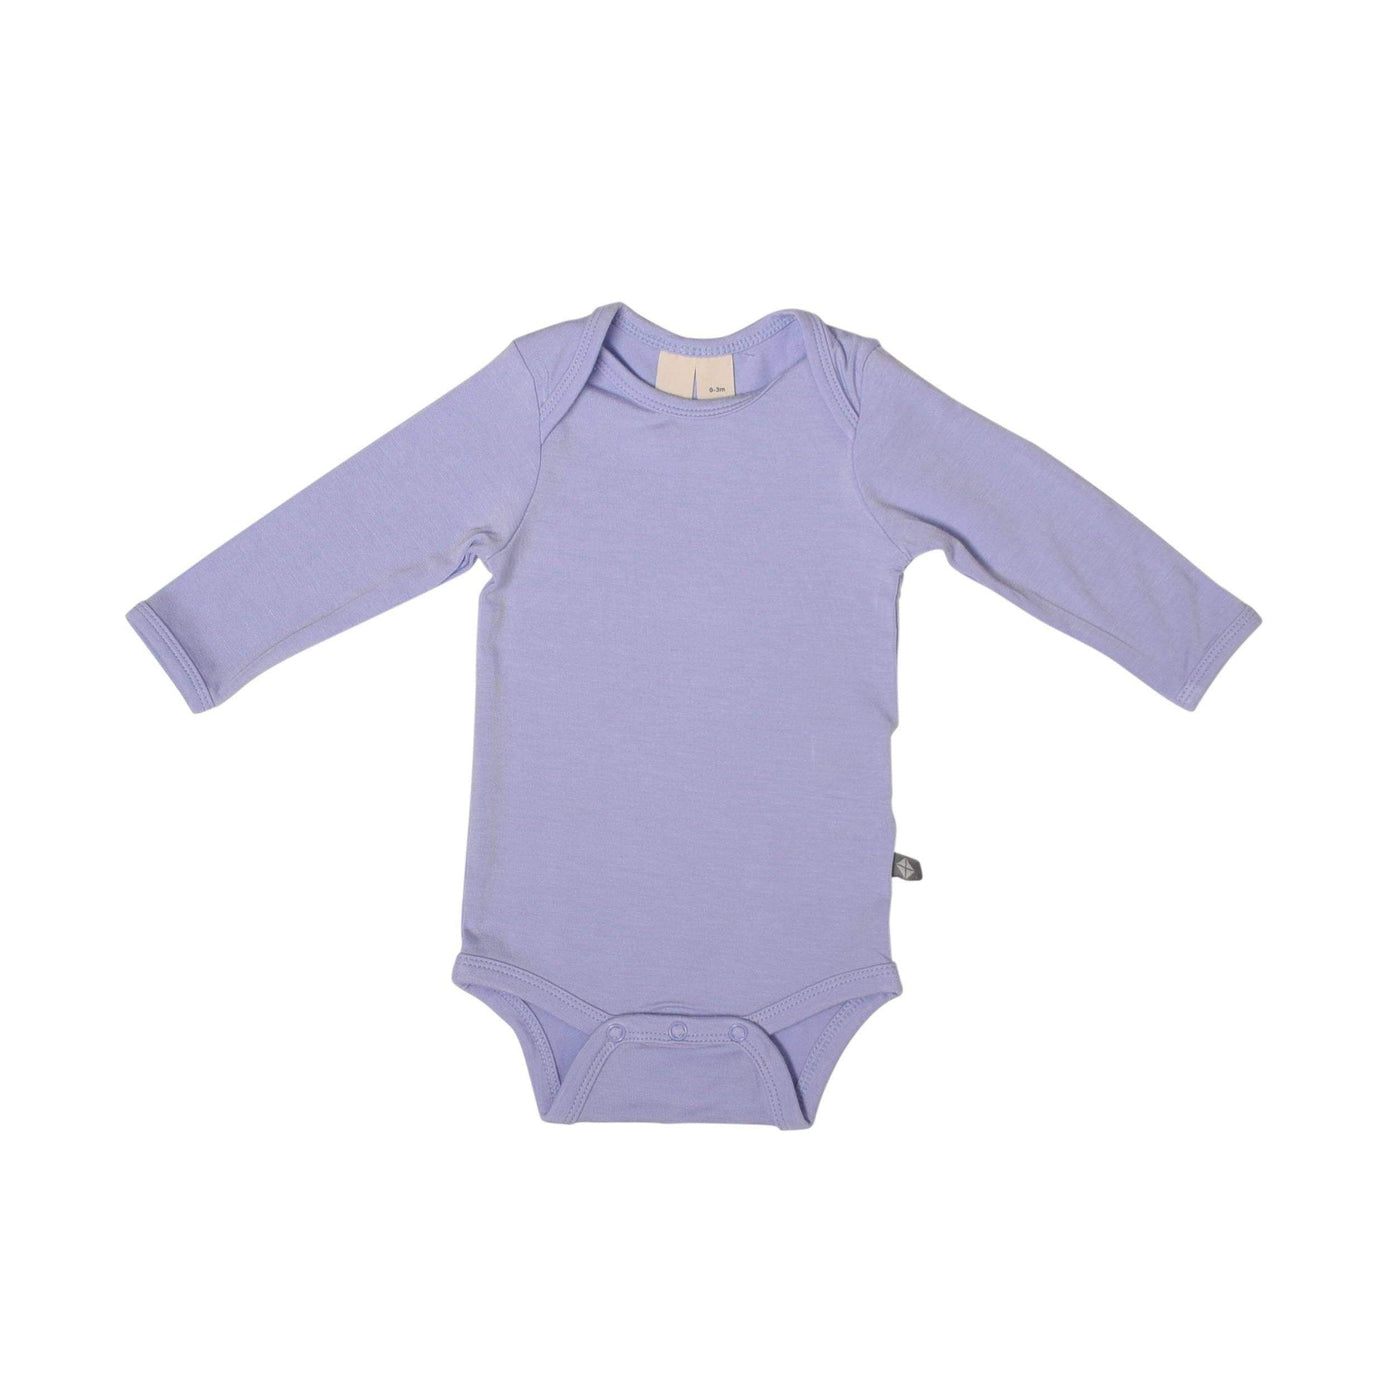 Long Sleeve Bodysuit in Lilac - Kyte Baby